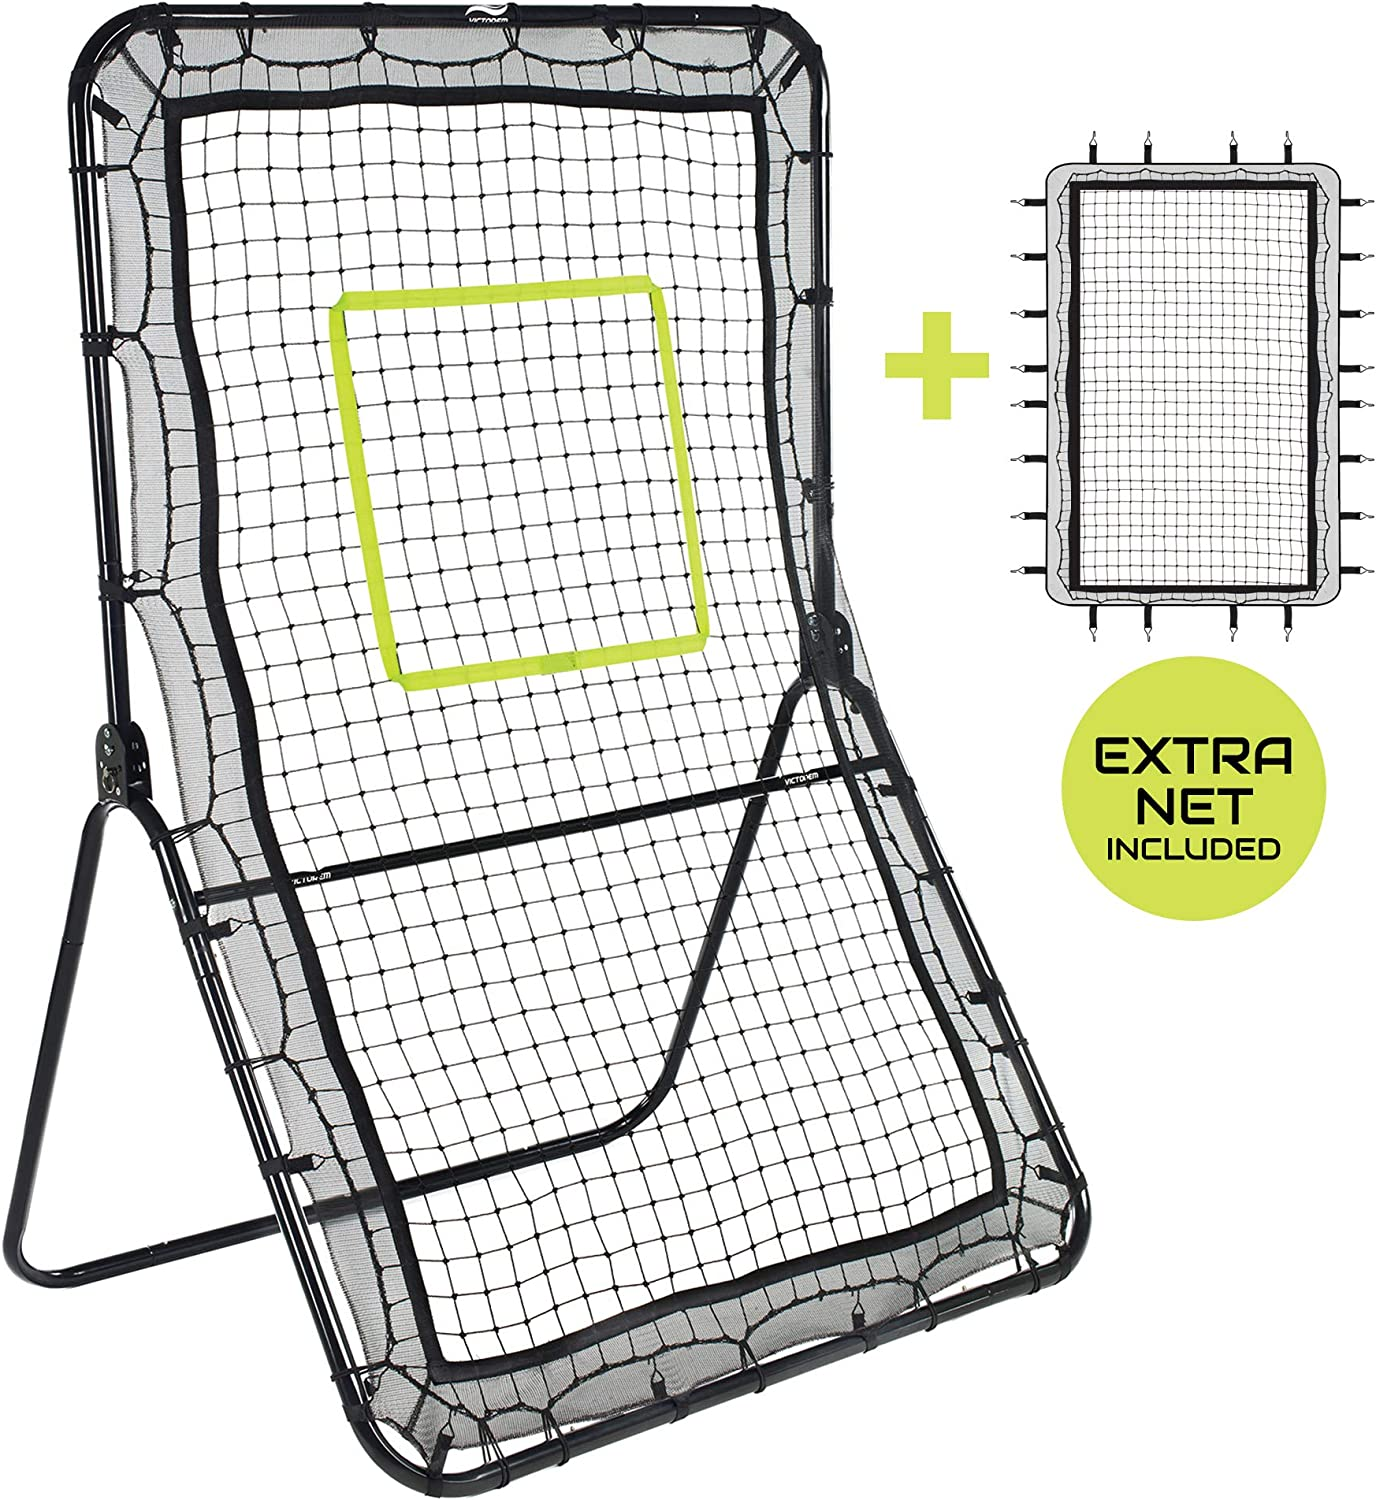 Victorem Lacrosse Rebounder - Bounce Back, Pitch Back Rebounder for Lacrosse, Baseball and Softball Training with Extra Net